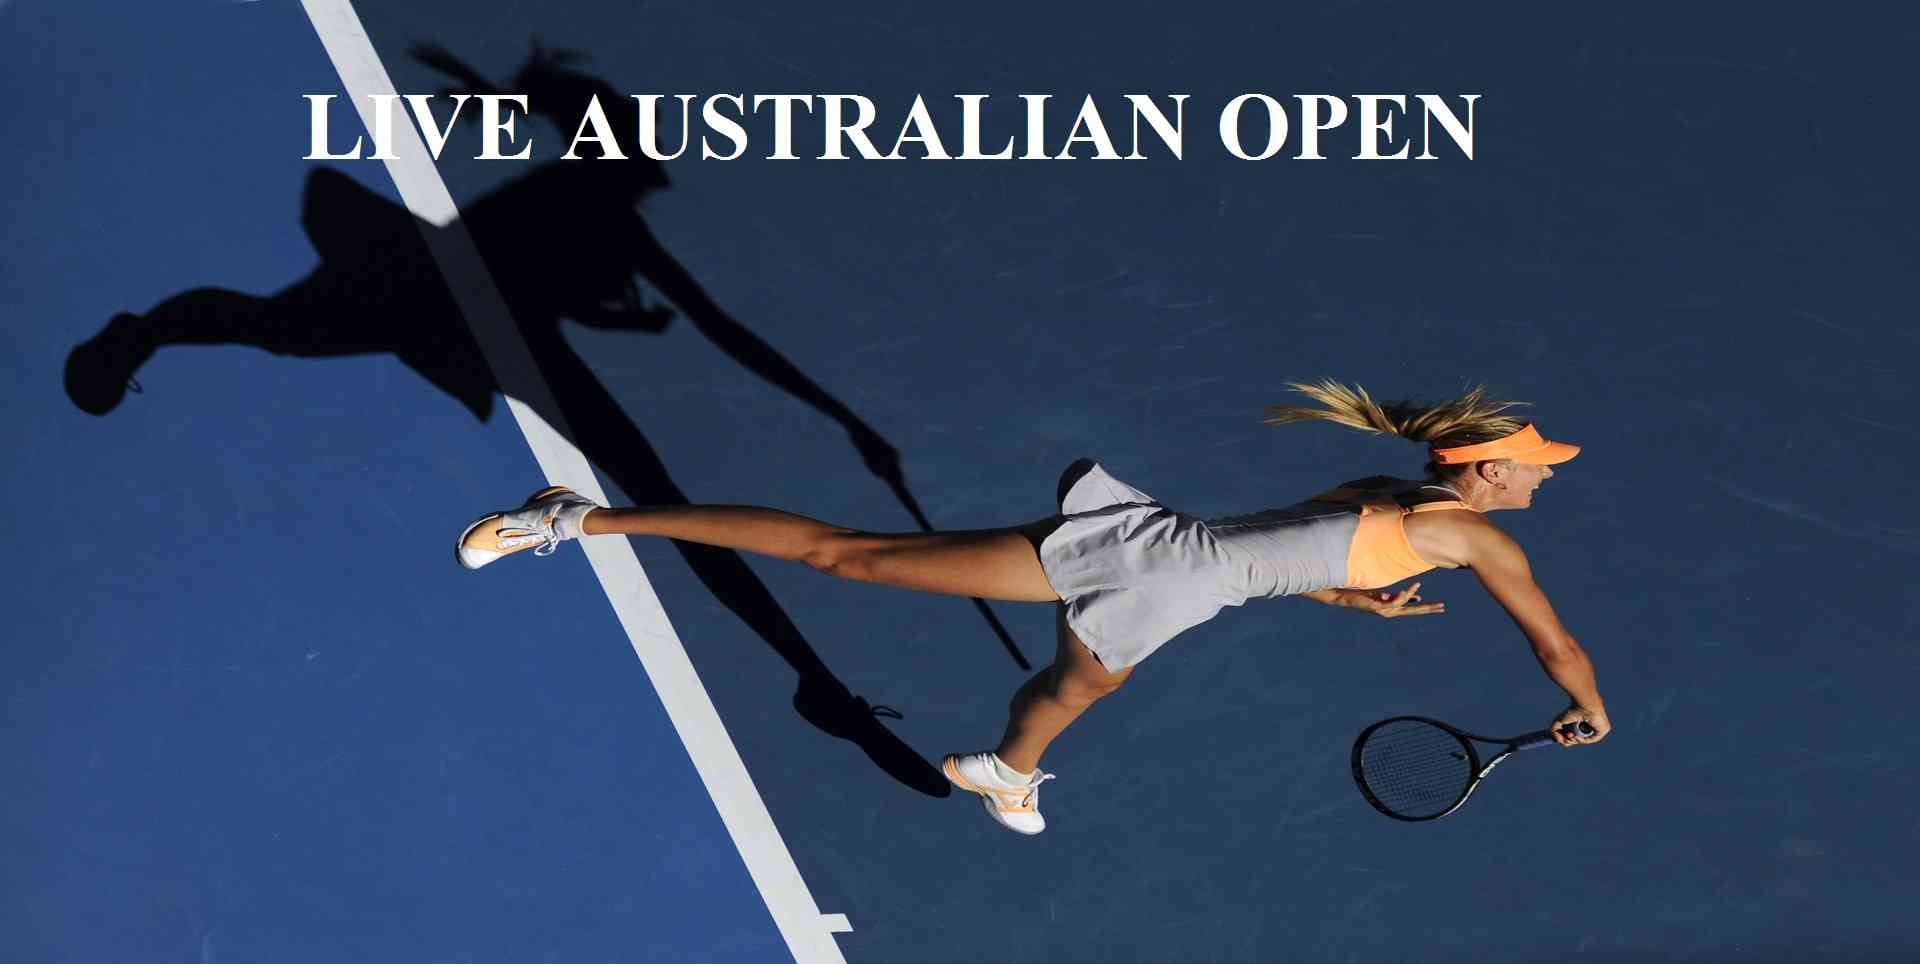 2019 Australian Open Total Purse increased